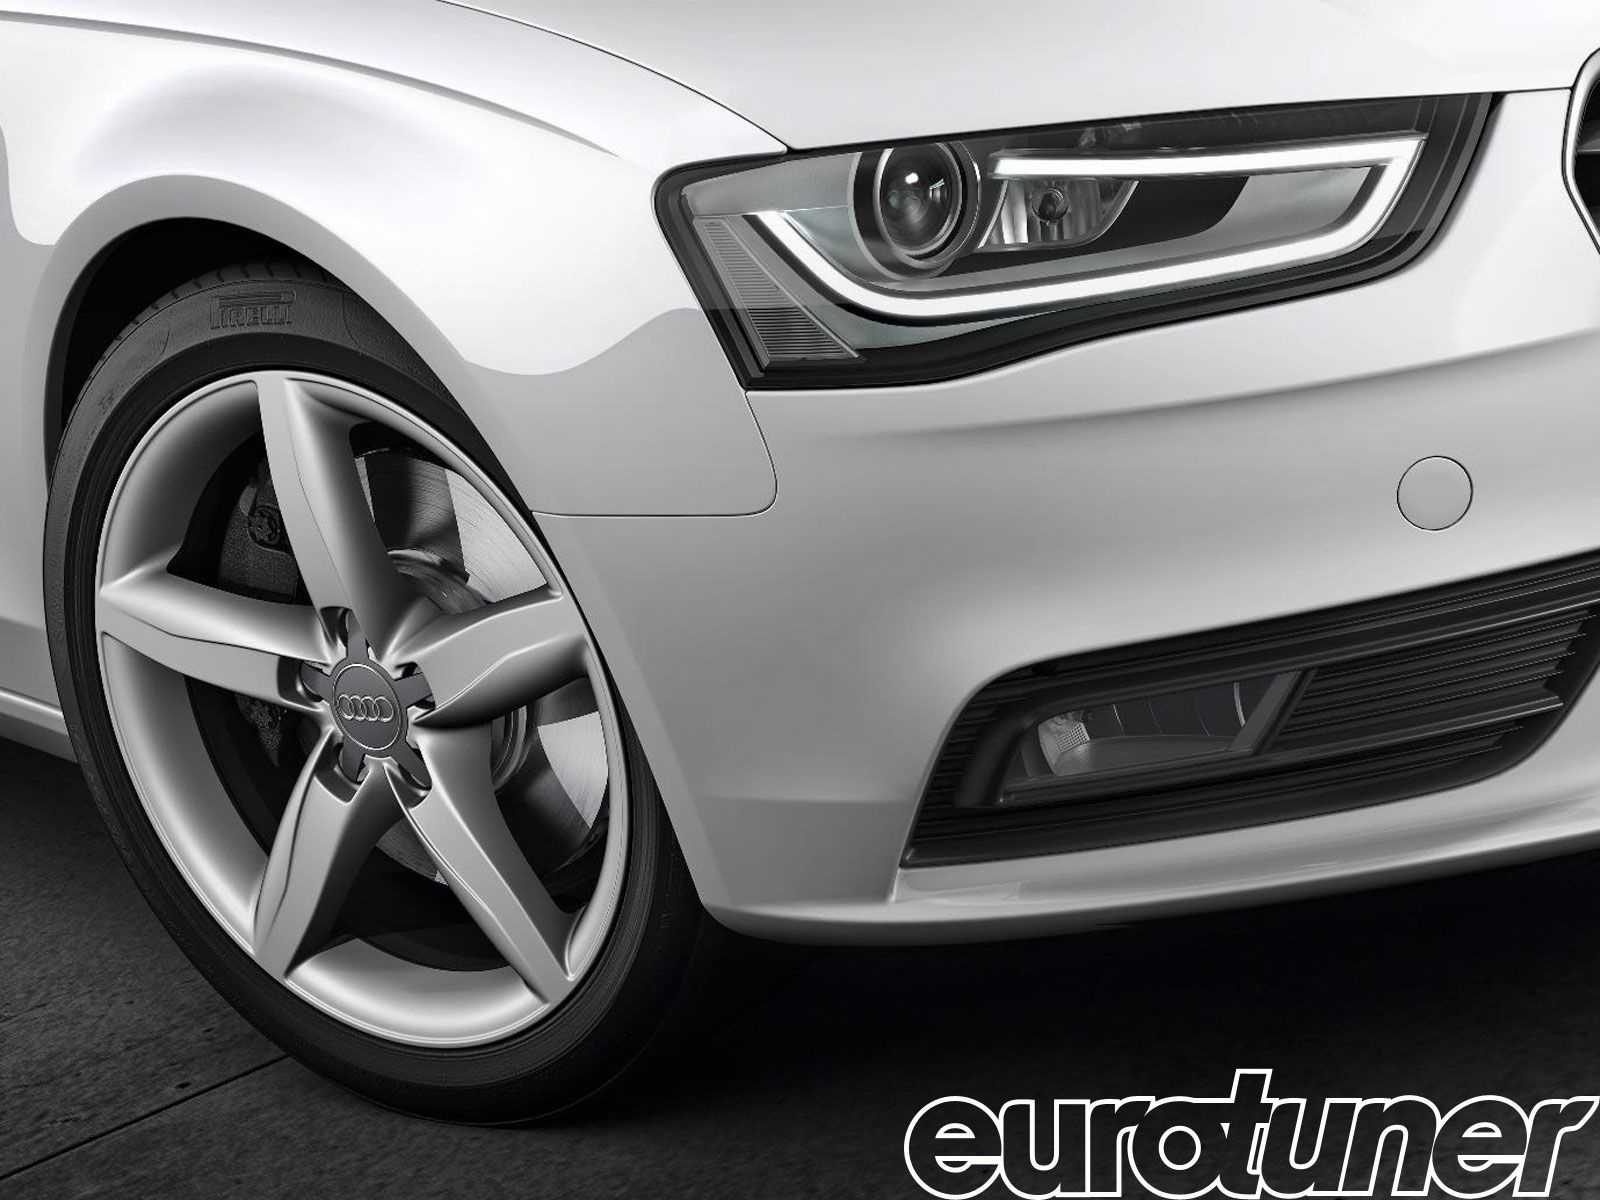 Audi A4 2012 Modified Lovely 2012 Audi A4 and S4 Web Exclusive Eurotuner Magazine-2150 Of Unique Audi A4 2012 Modified-2150